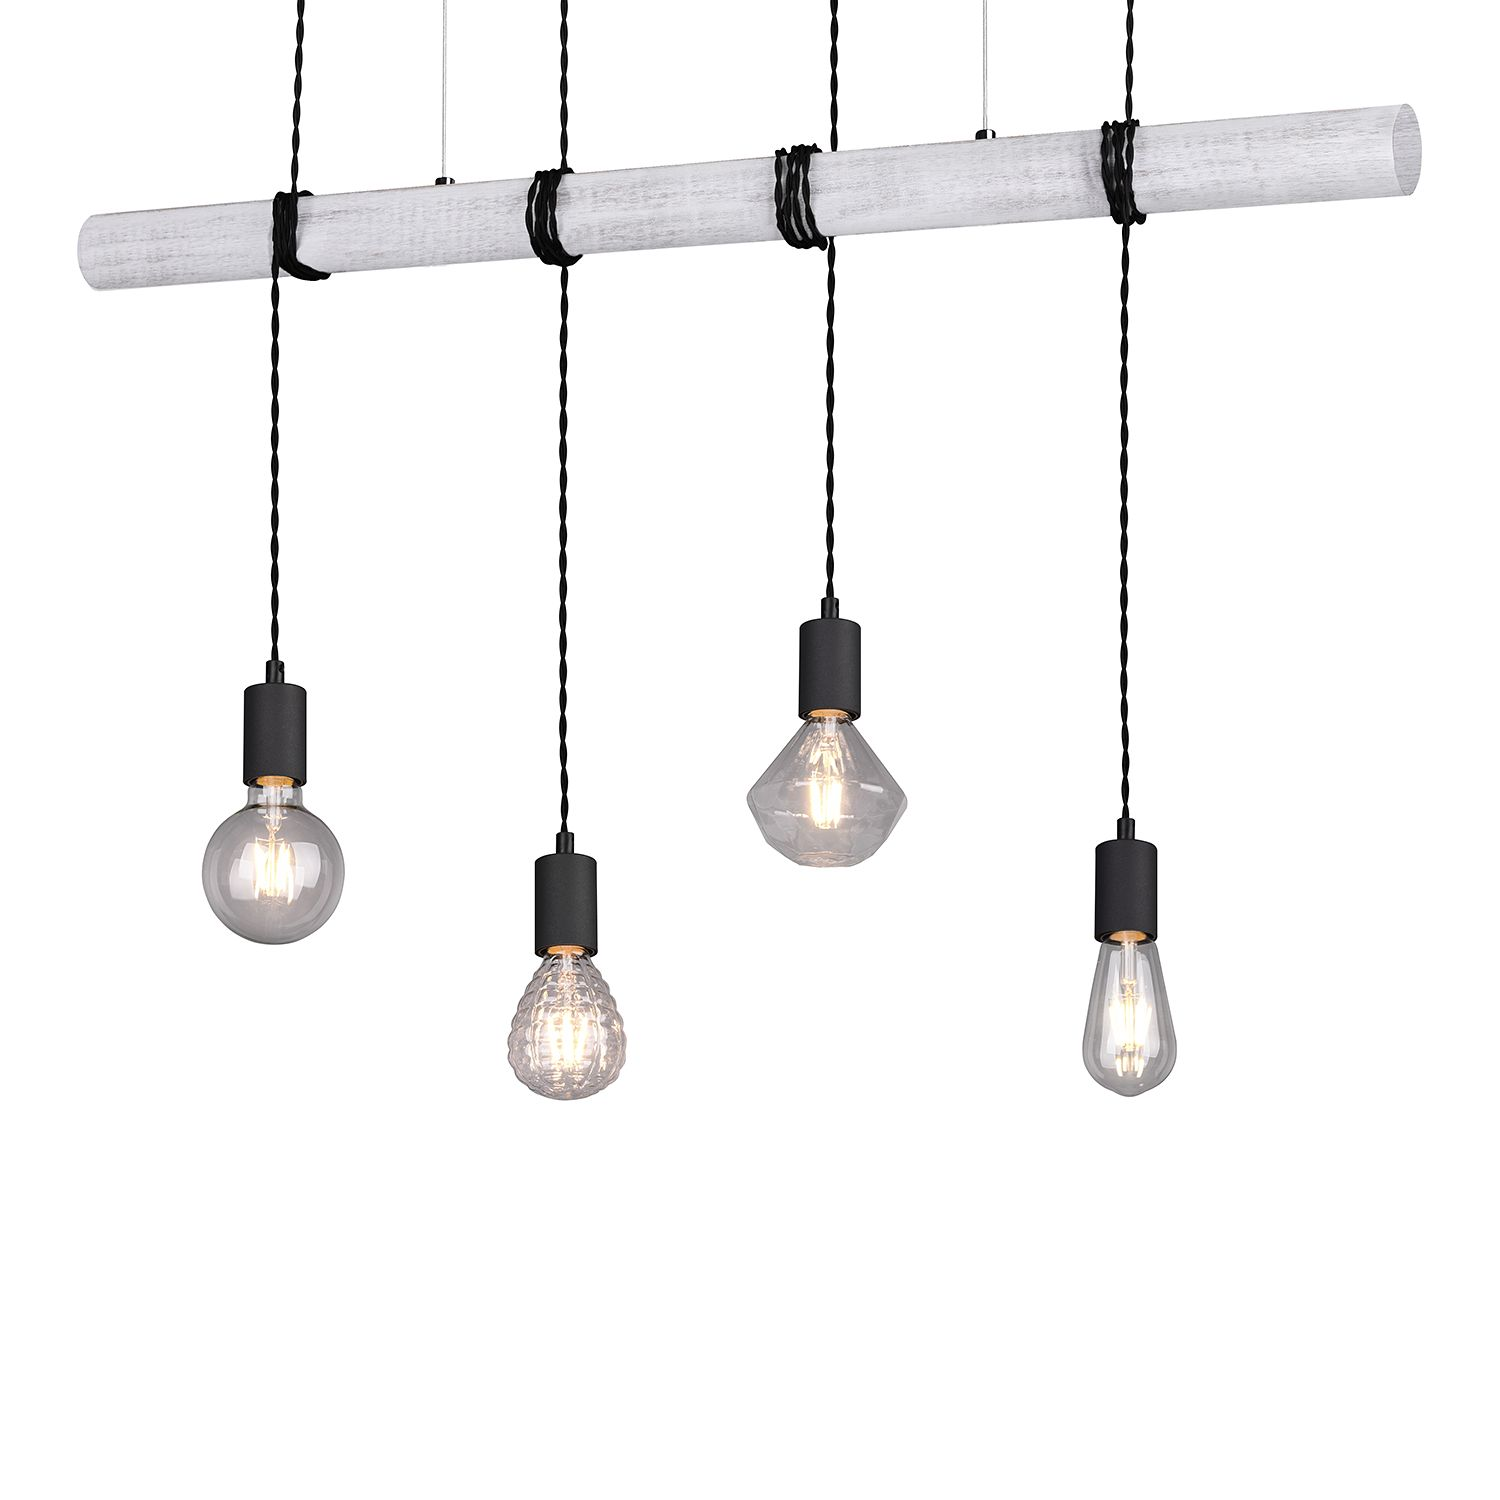 Suspension LED Dela